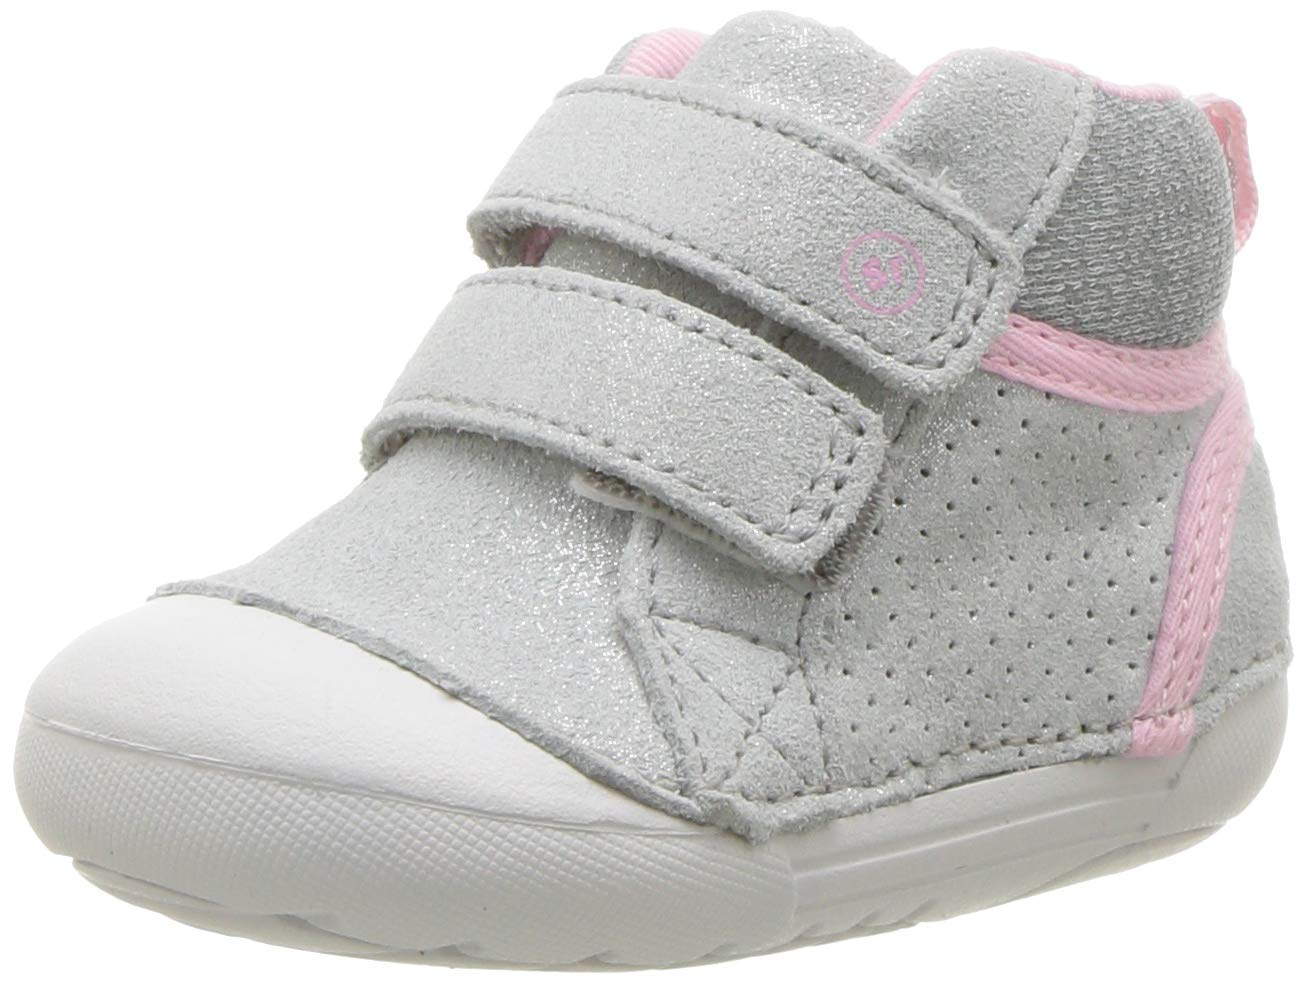 Stride Rite Girls' SM Milo Sneaker, Silver, 4 M US Toddler by Stride Rite